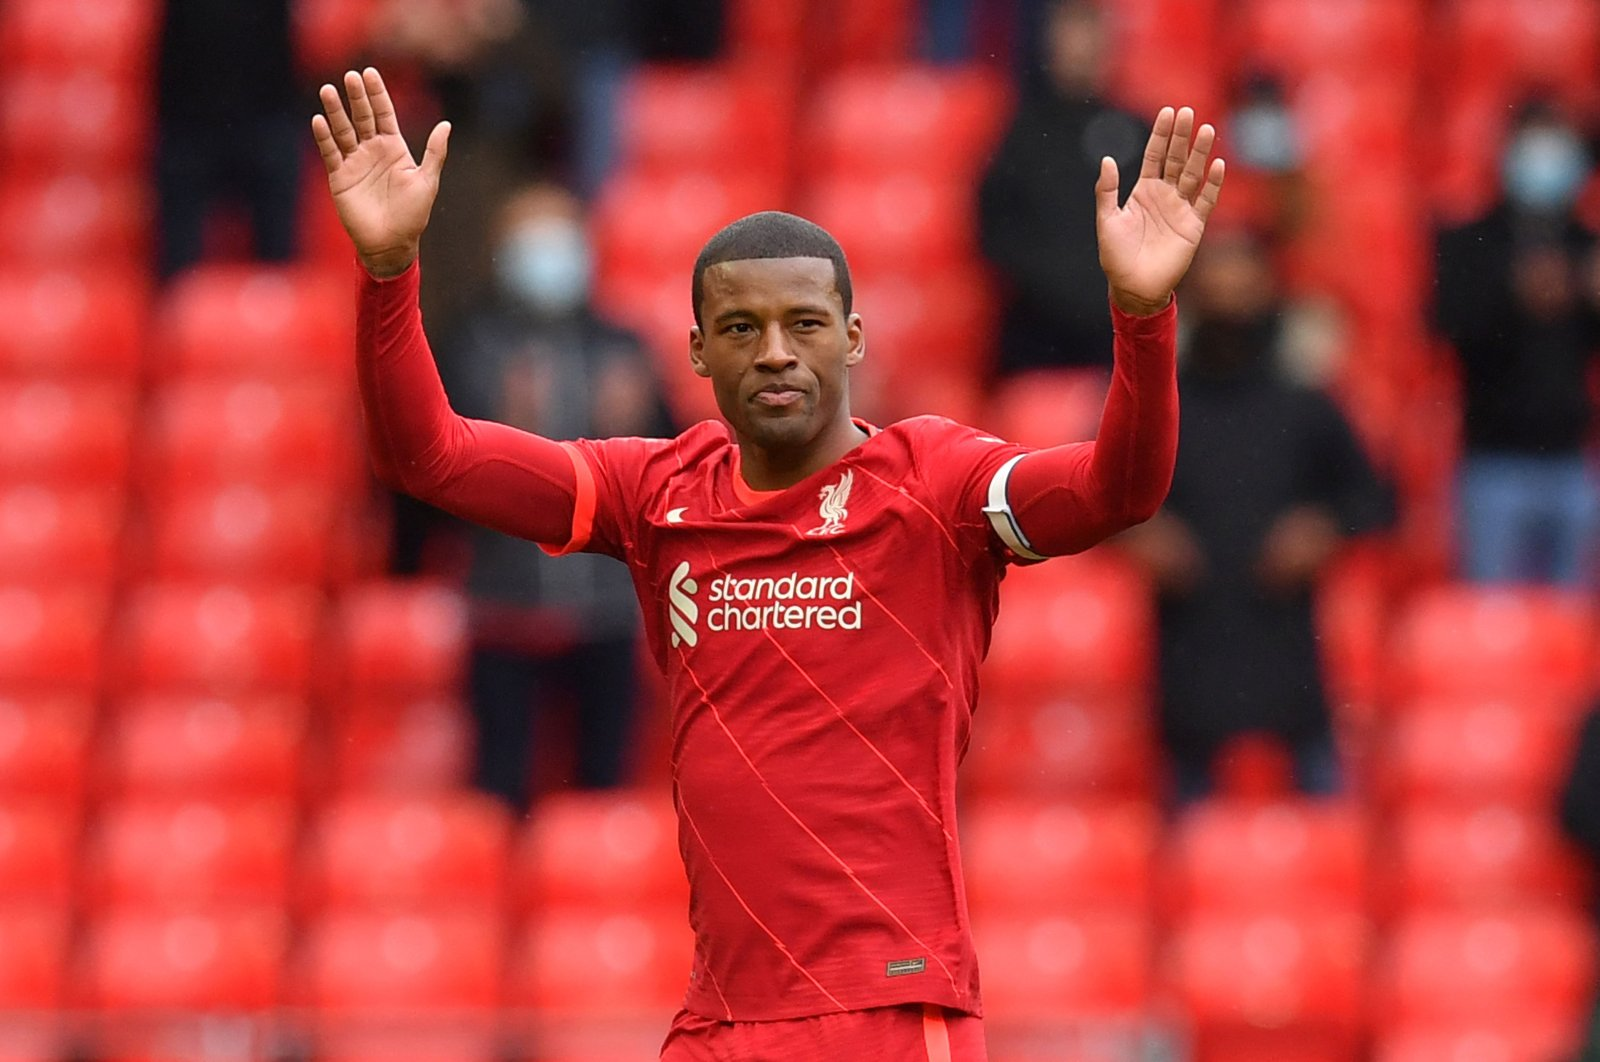 Liverpool's Dutch midfielder Georginio Wijnaldum leaves the pitch after being substituted off during the English Premier League football match between Liverpool and Crystal Palace at Anfield, Liverpool, England, May 23, 2021.